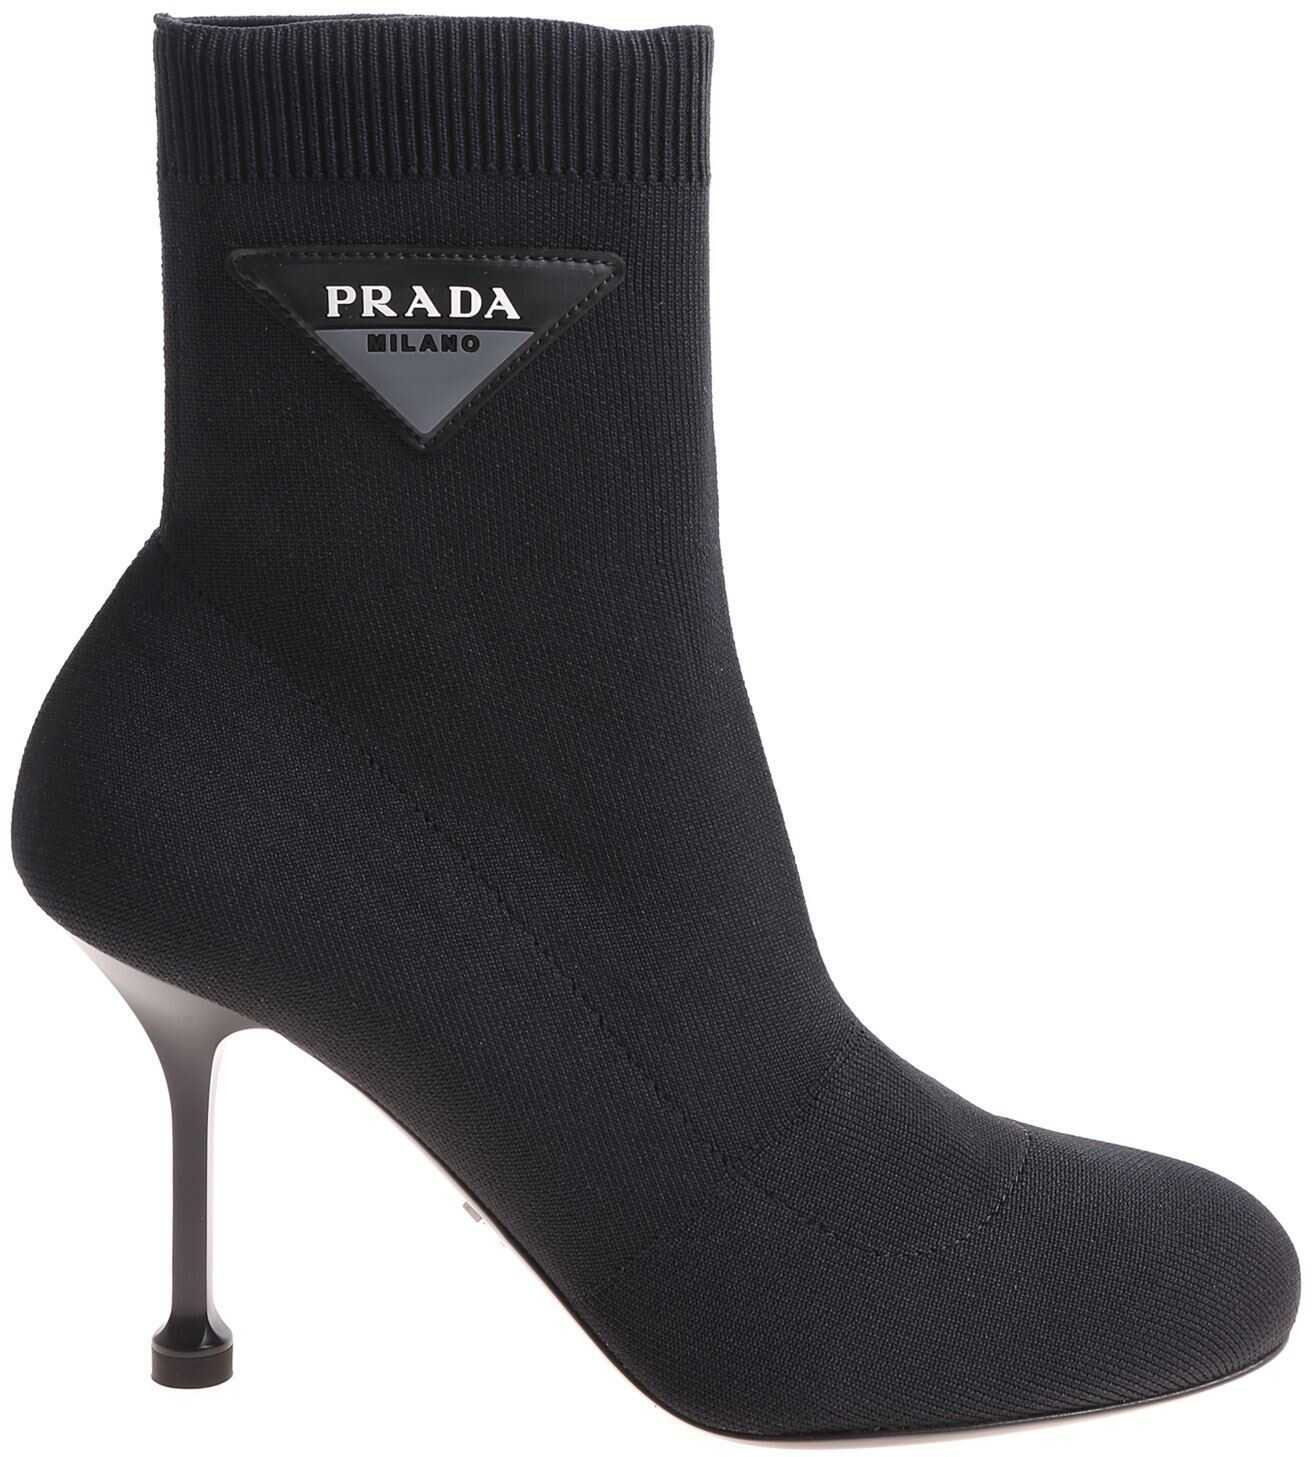 Prada Black Stretch Knitted Ankle Boots Black